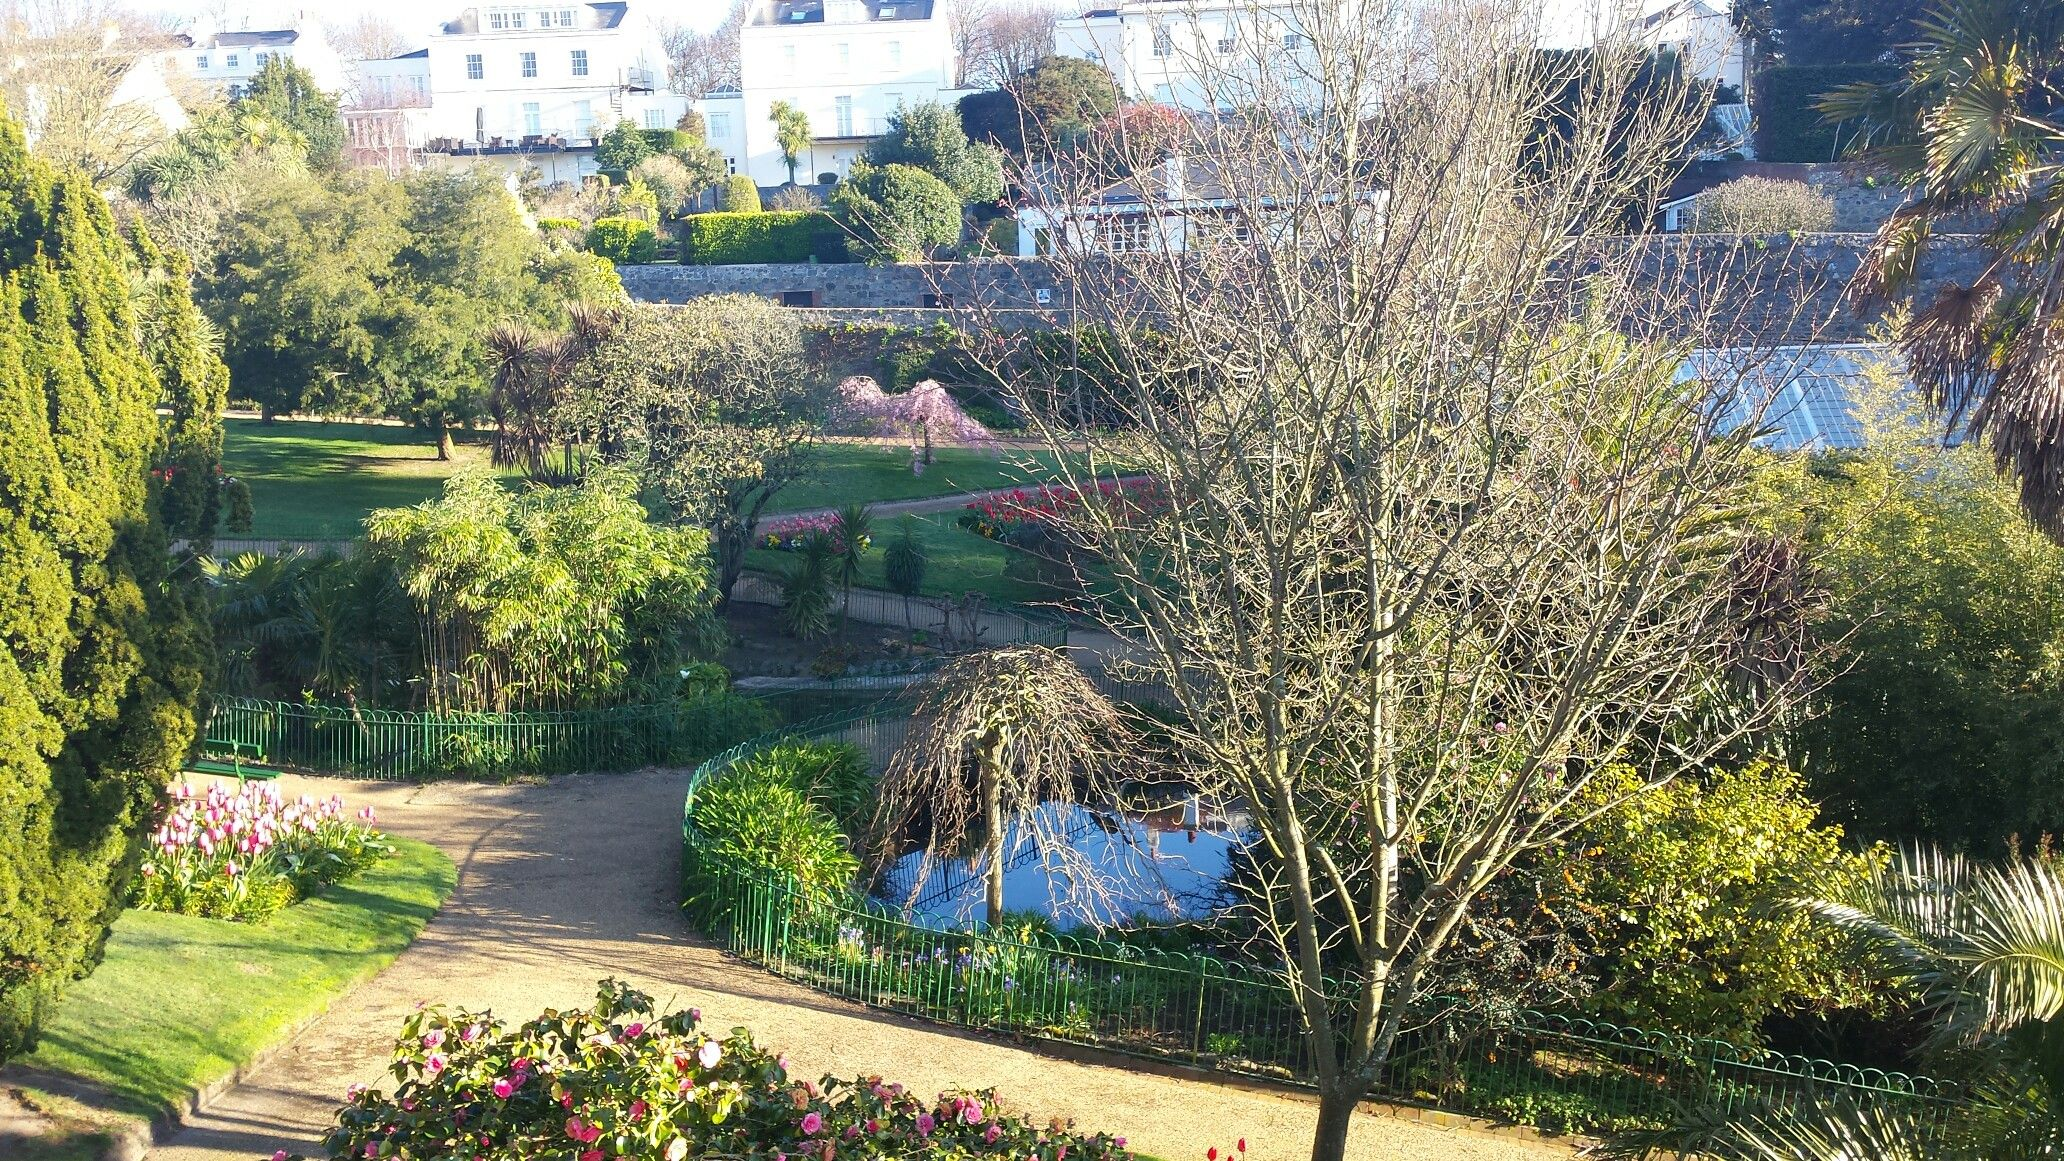 Candie Gardens Guernsey, a beautiful place